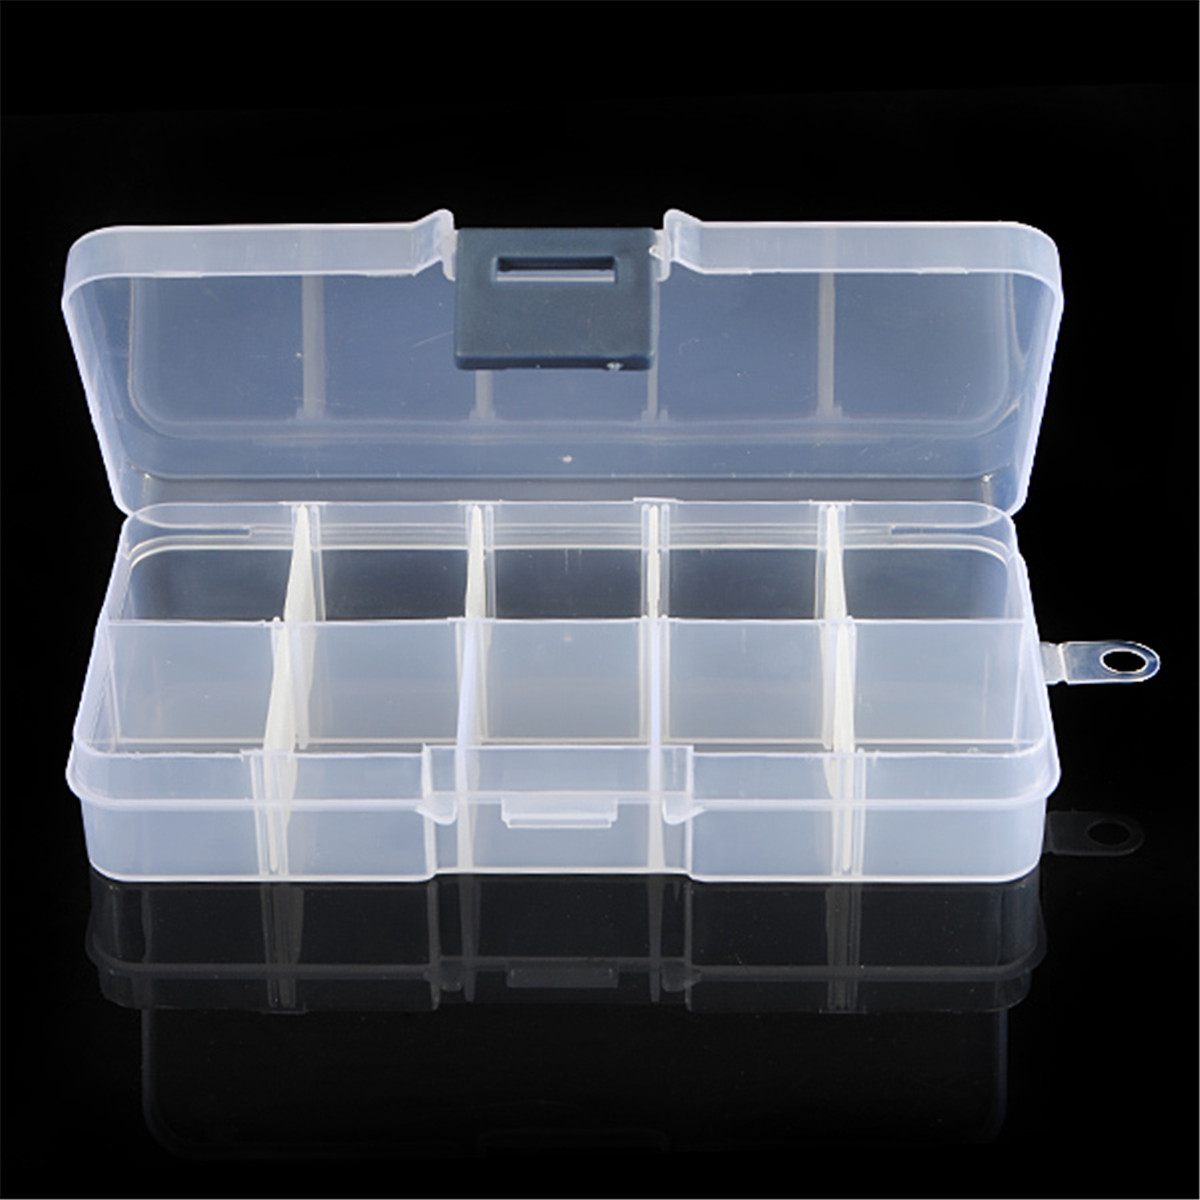 10 Grids Plastic Empty Box Nail Art Container Tips Rhinestone Gems Crystal Jewelry Beads Accessories Detachable Storage Case